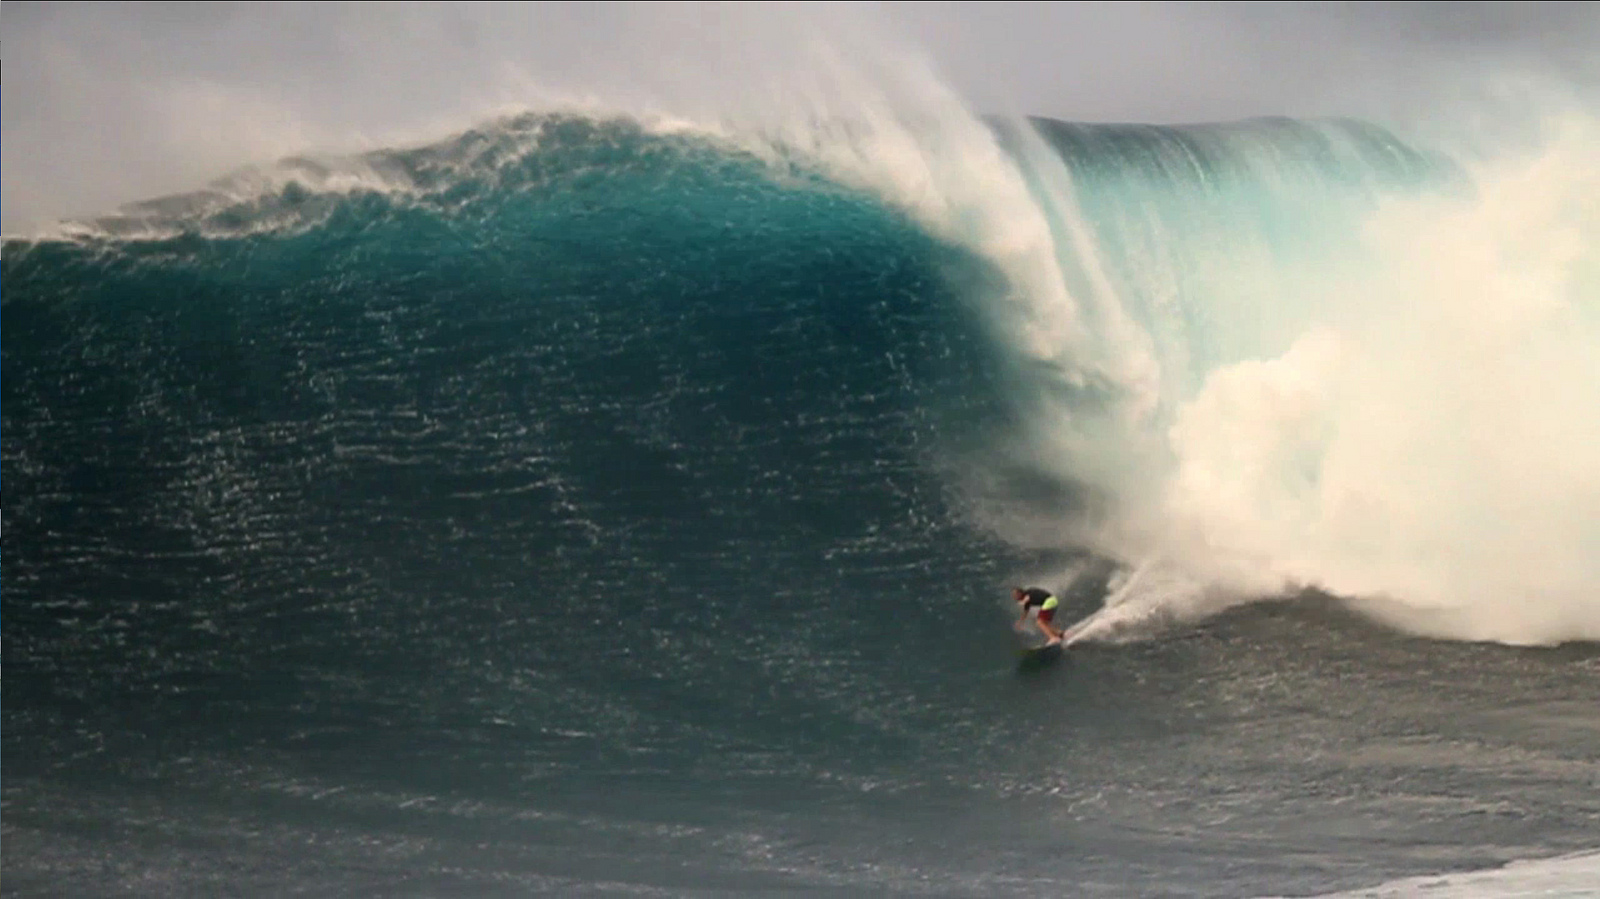 http://upload.wikimedia.org/wikipedia/commons/5/5a/Jeff_Rowley_Big_Wave_Surfer_2012_Finalist_Billabong_XXL_Big_Wave_Awards_Ride_of_Year_Xvolution_Media_-_Flickr_-_Jeff_Rowley_Big_Wave_Surfer_(3).jpg